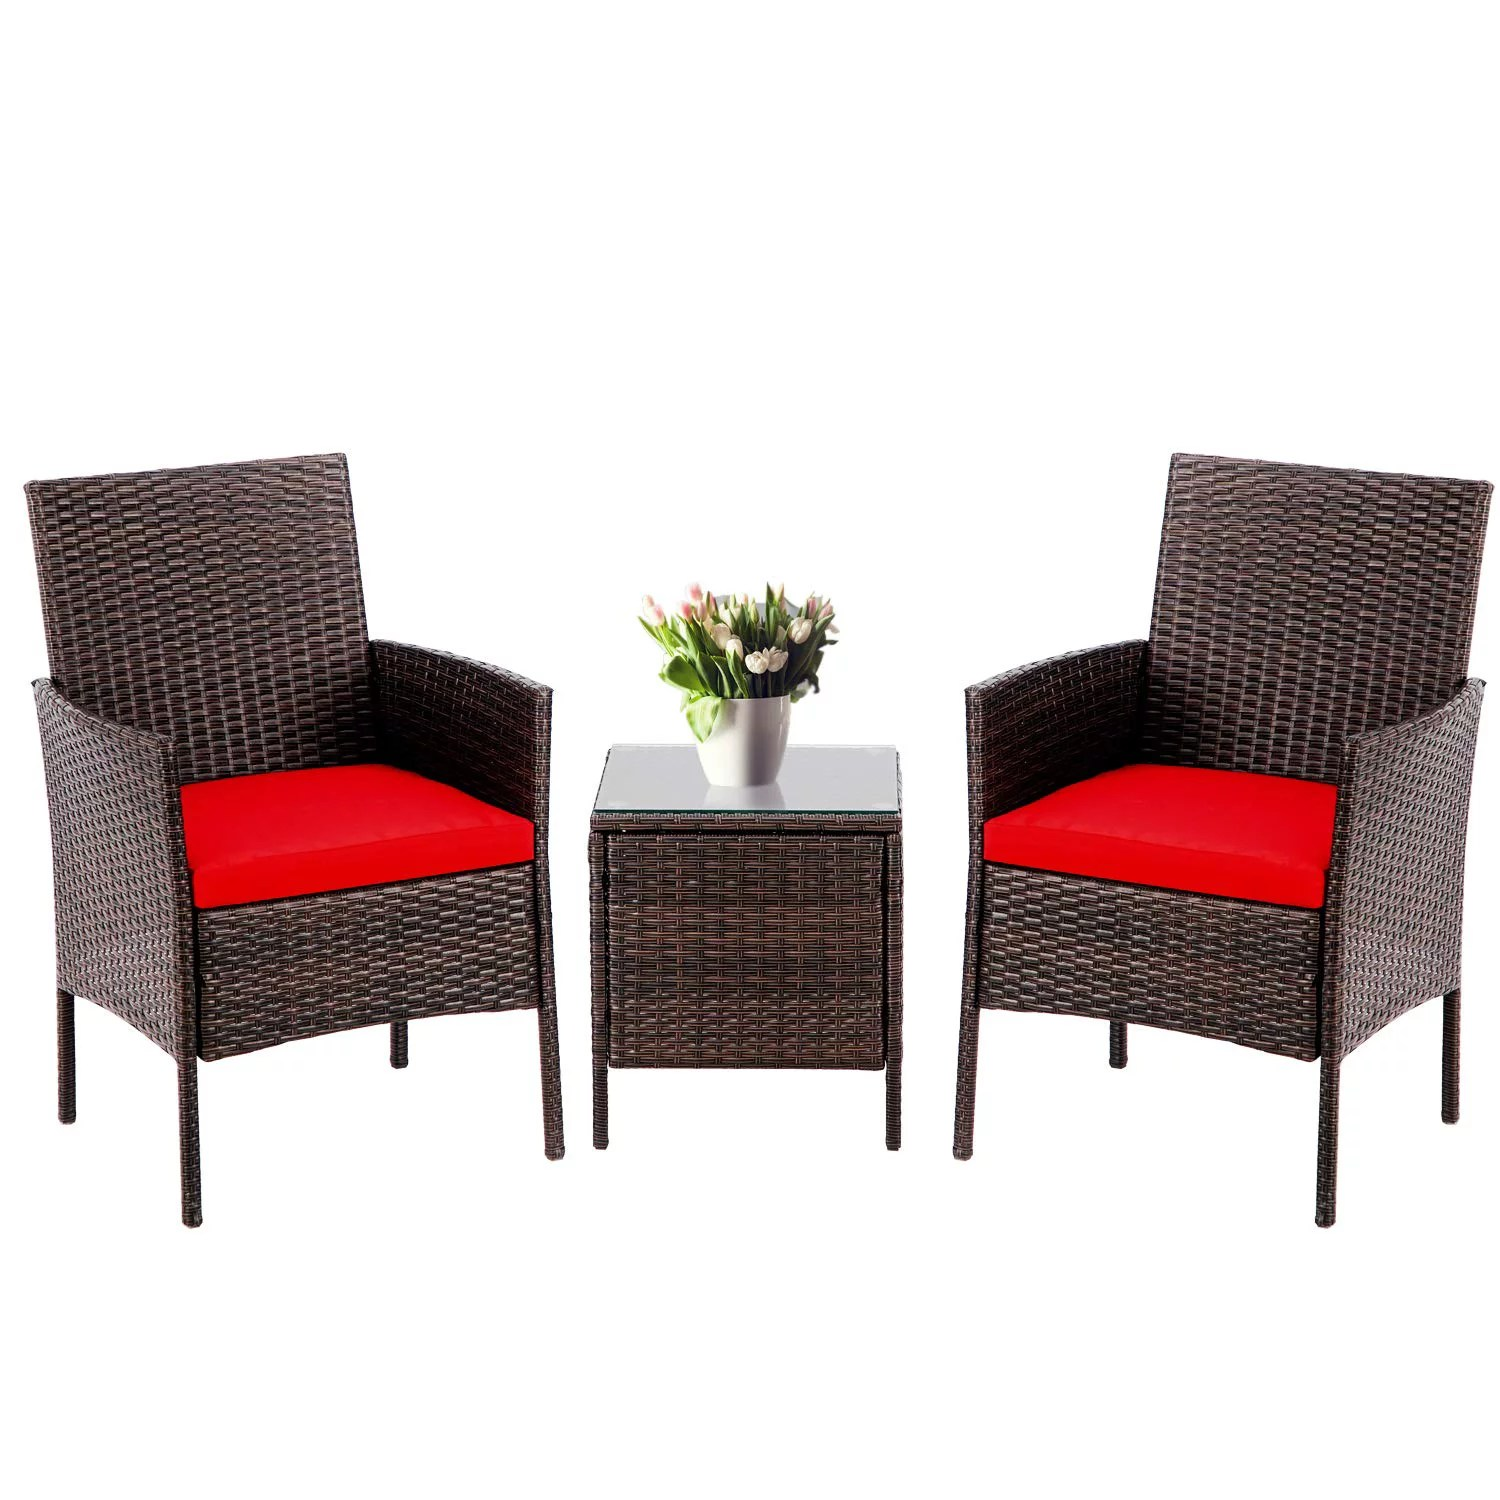 suncrown 3 piece patio bistro outdoor furniture set all weather brown wicker and glass side table red cushion